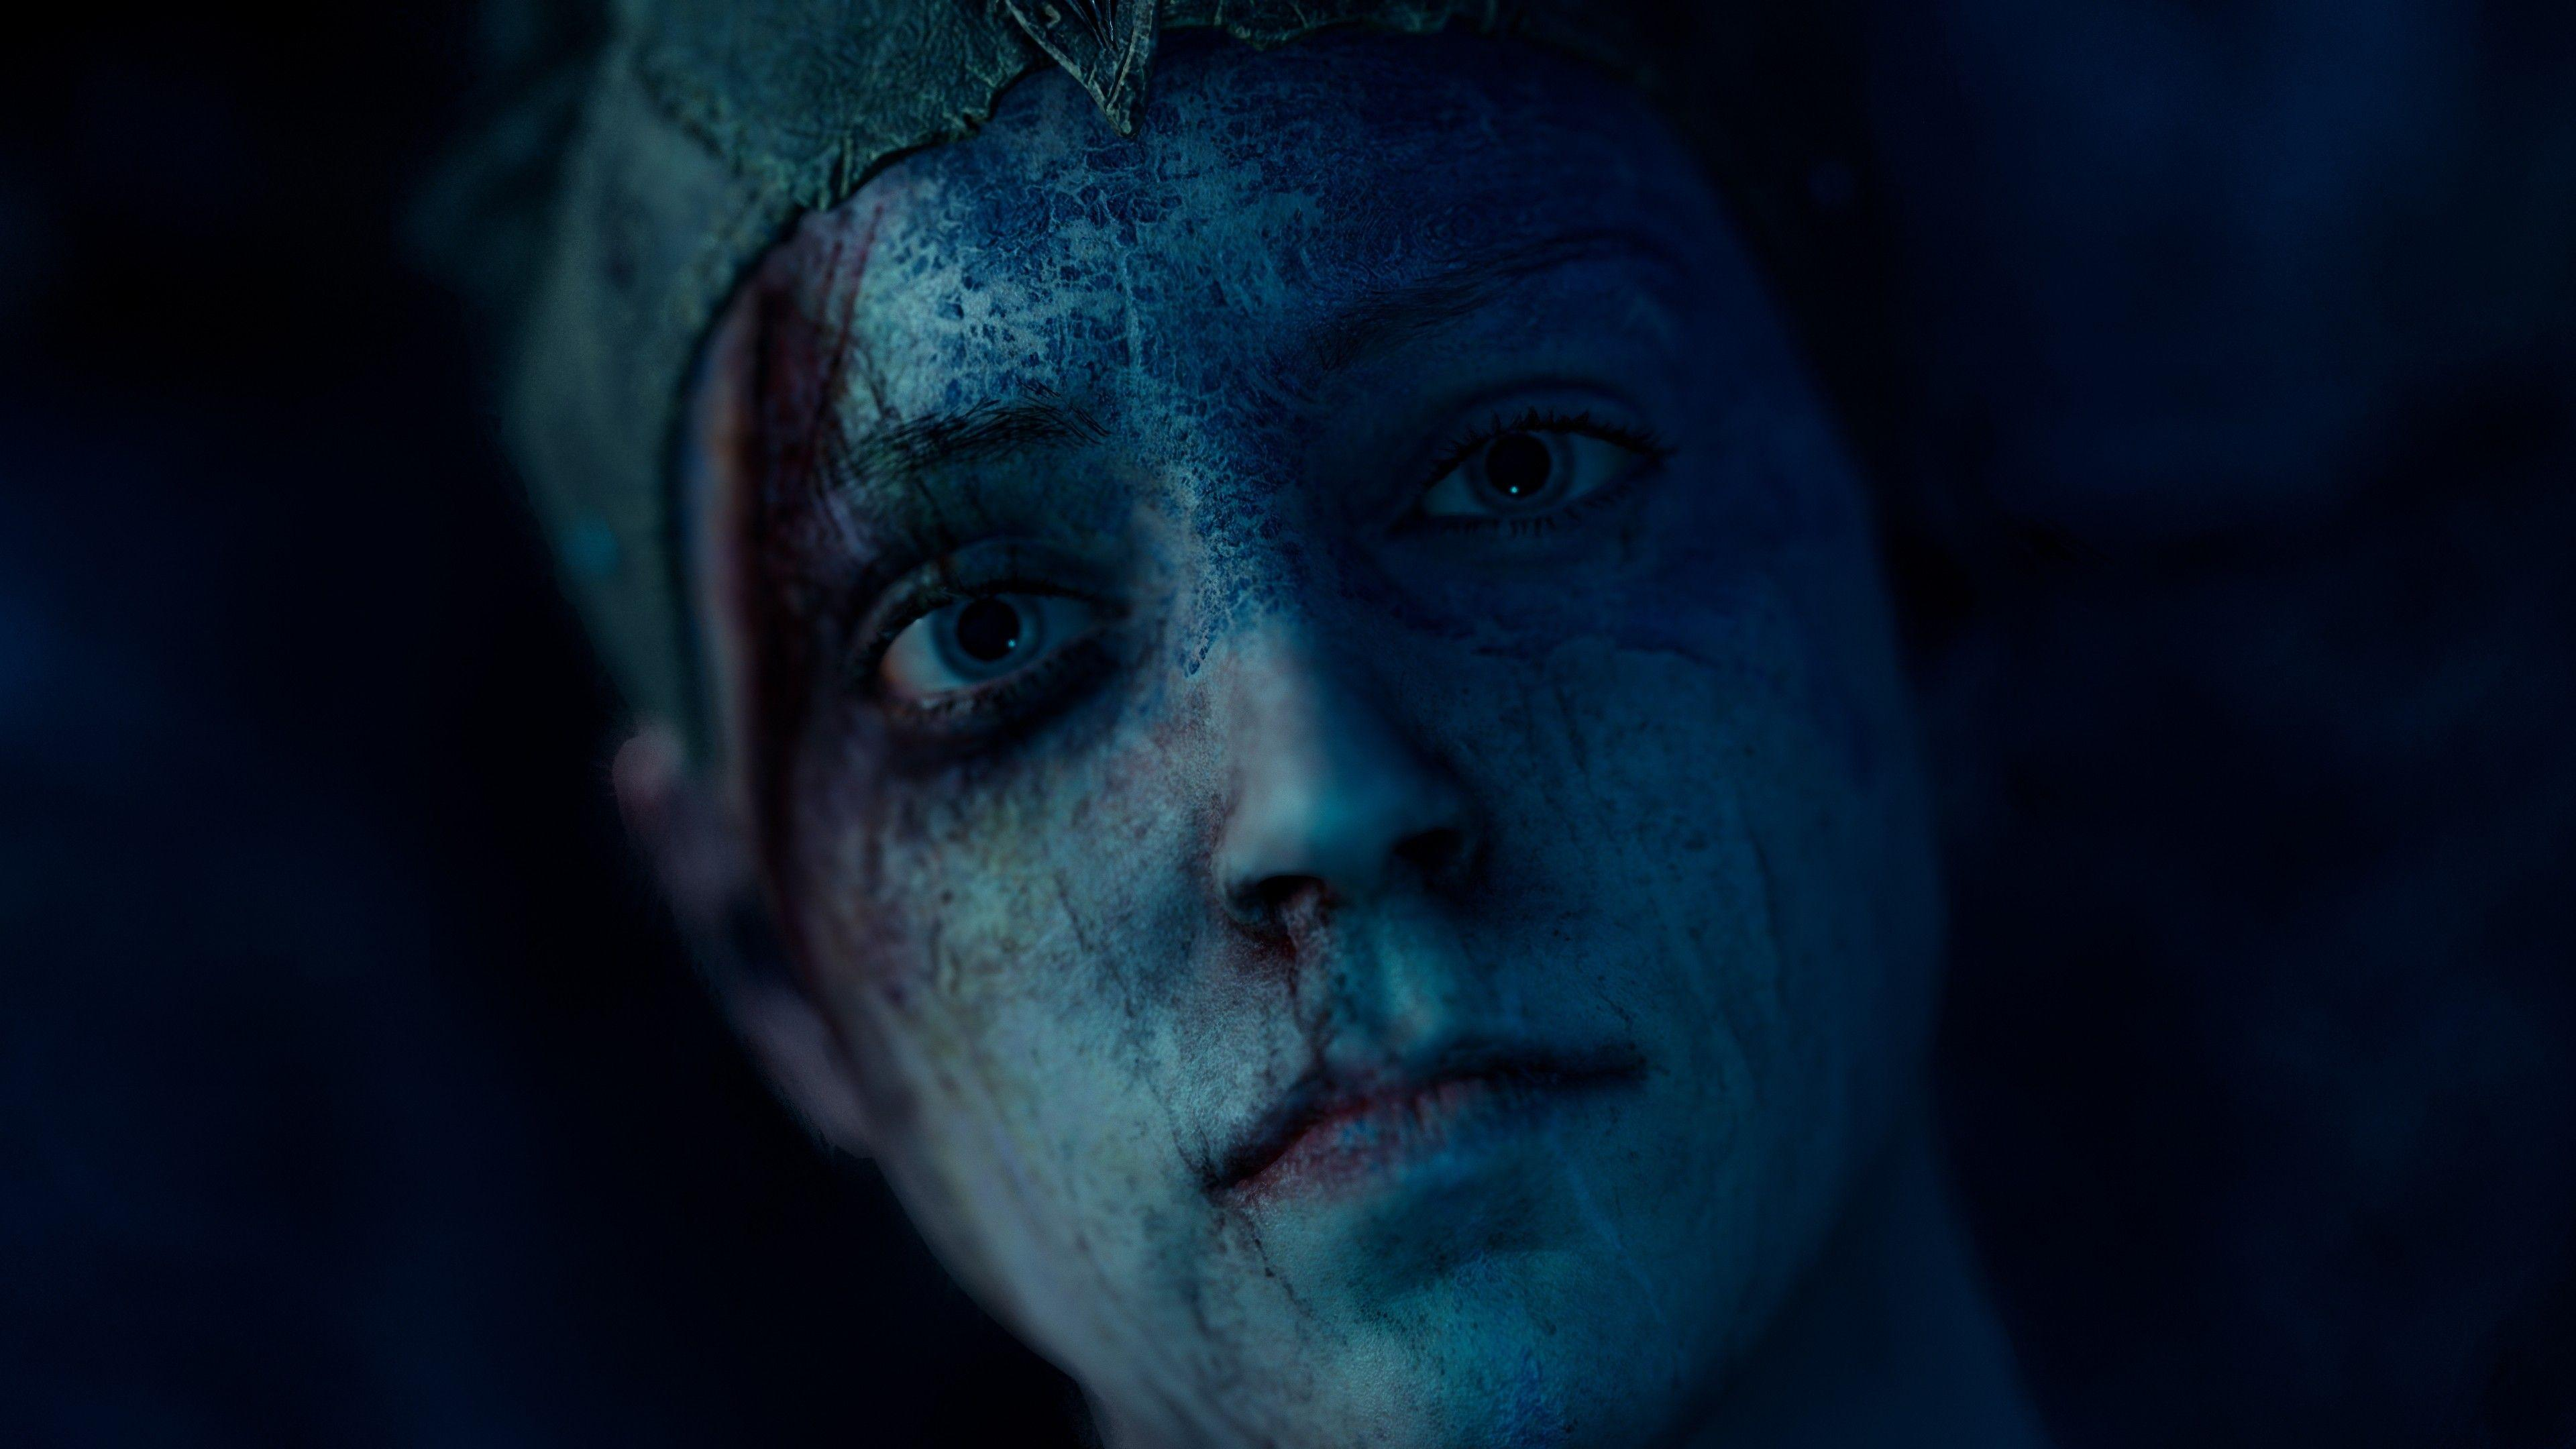 Download 3840x2160 Hellblade: Senua's Sacrifice Wallpapers for UHD